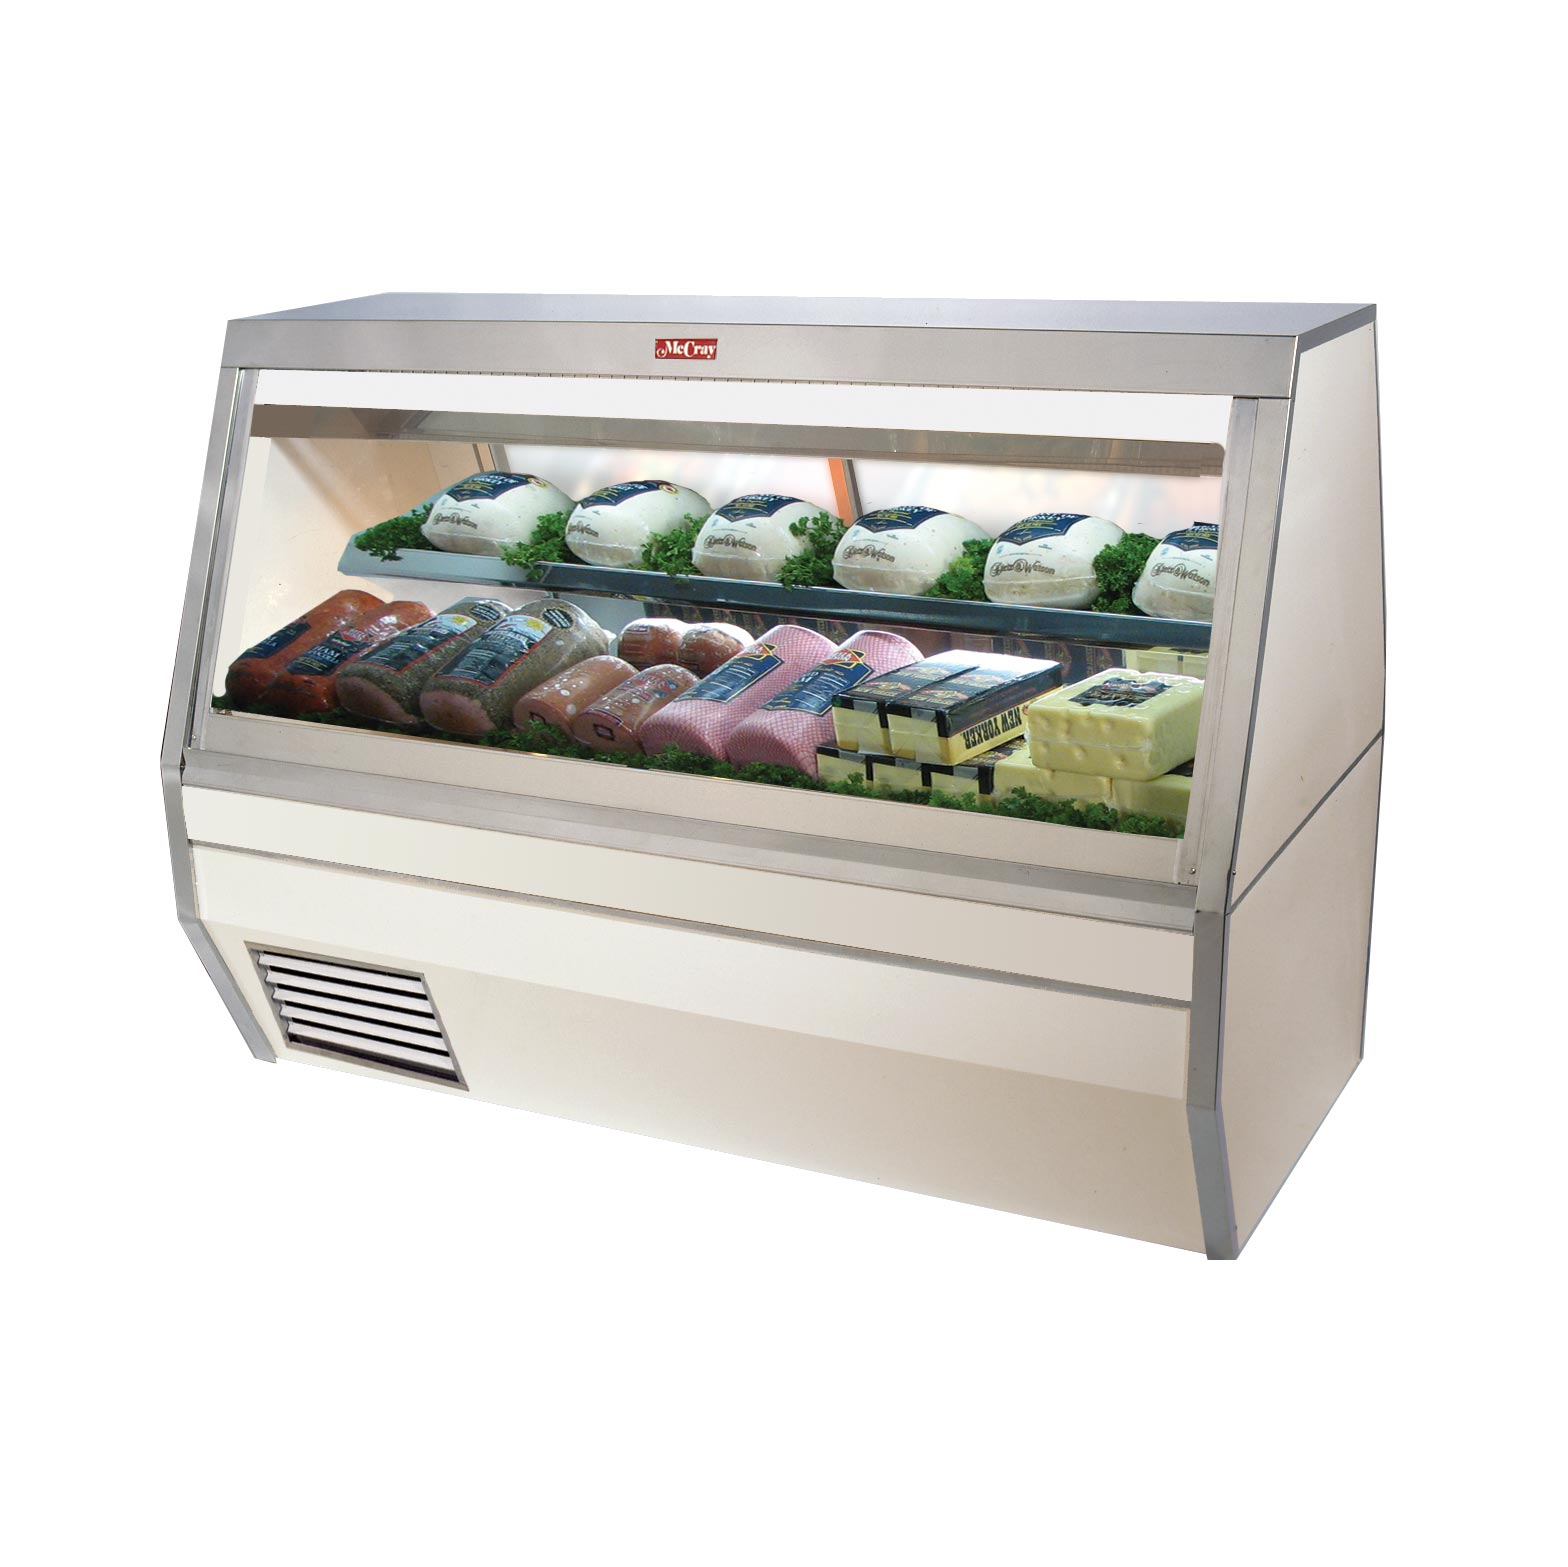 SC-CDS35-6L-LED Howard-McCray display case, refrigerated deli